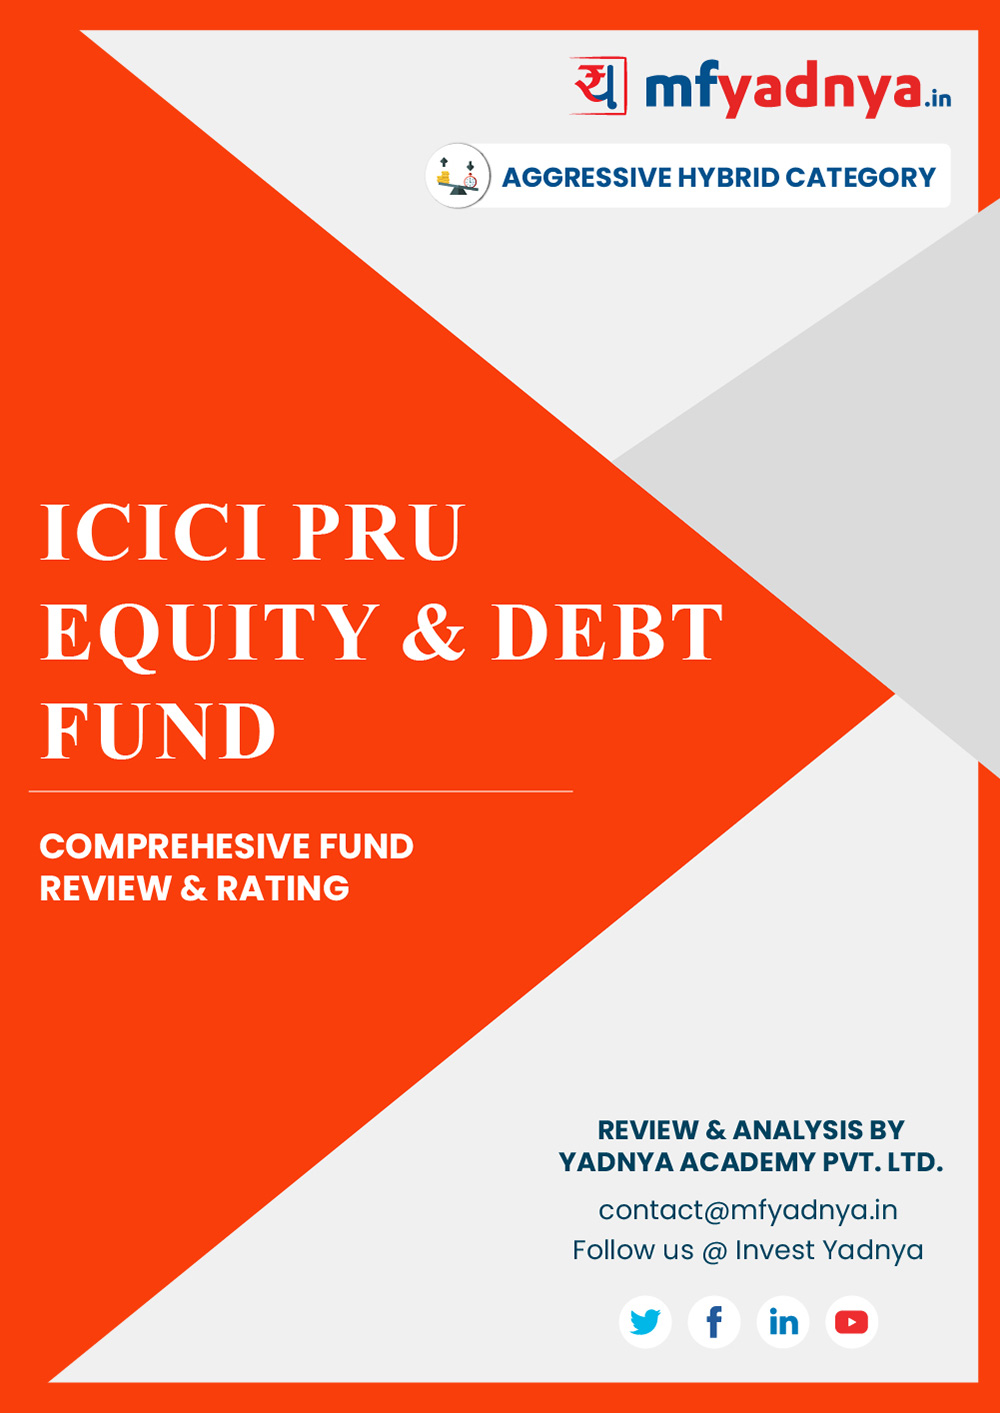 Aggressive Hybrid Category Review - 'ICICI PRU Equity & DEBT Fund'. Most Comprehensive and detailed MF review based on Yadnya's proprietary methodology of Green, Yellow & Red Star. Detailed Analysis & Review based on Feb 29th, 2020 data. Review also gives you the historical trend of the performance which will show fund's performance consistency.